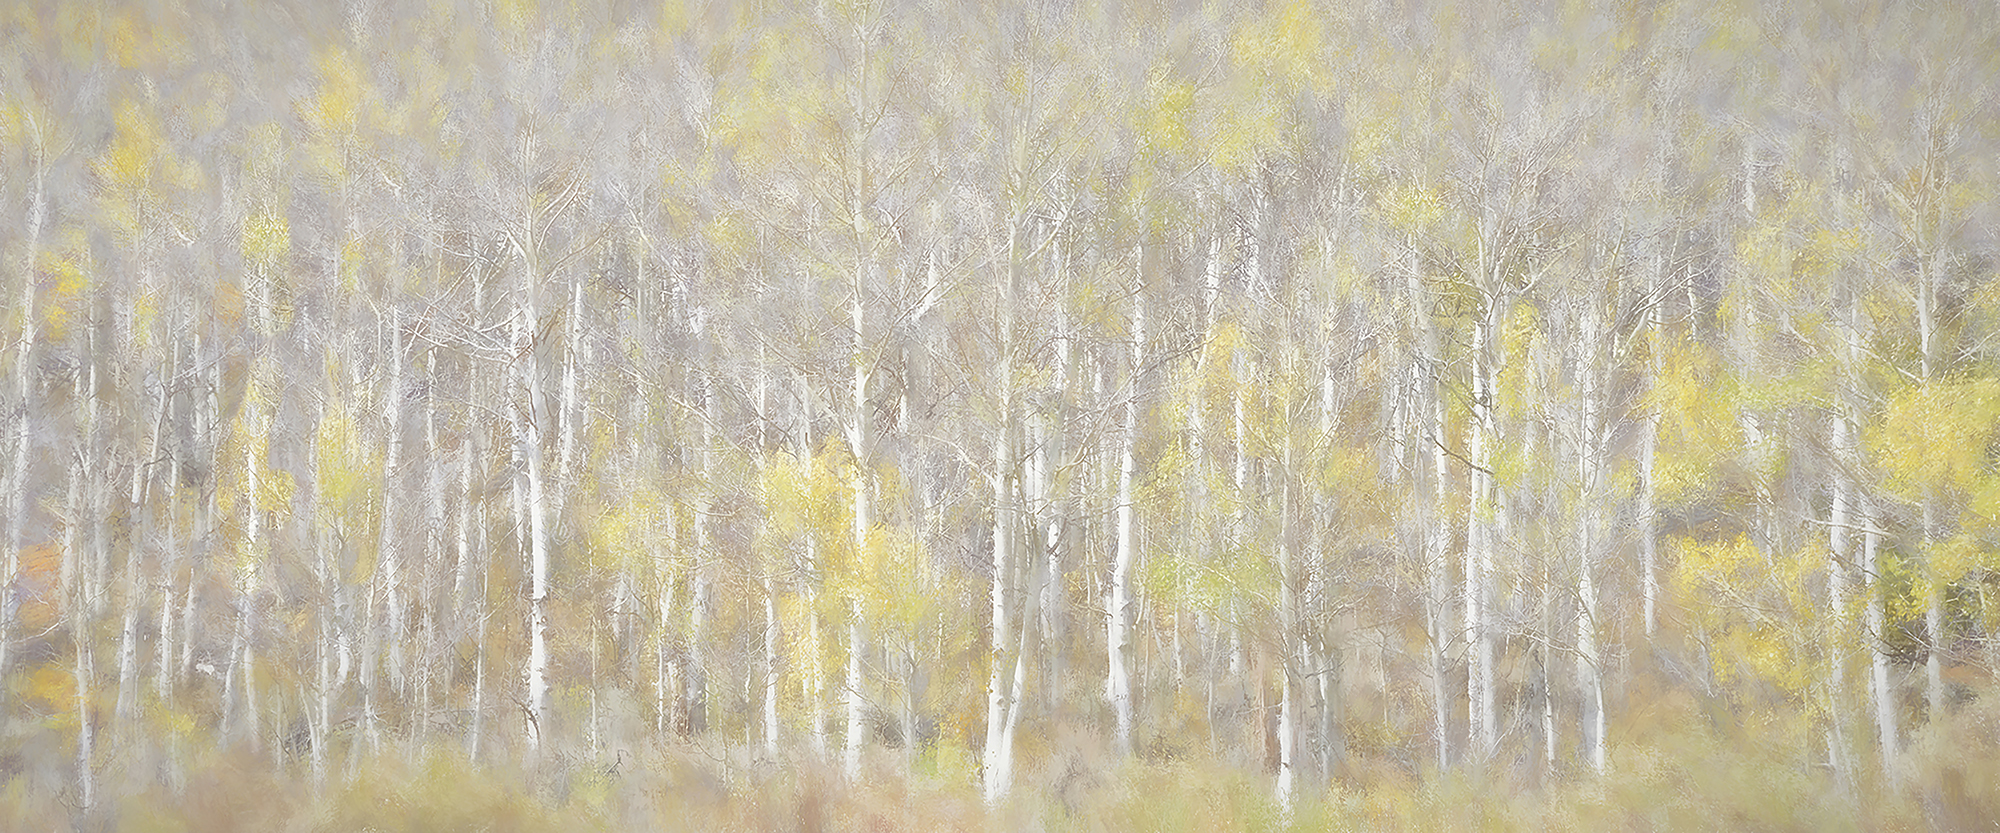 Painted-Aspen-for-Web